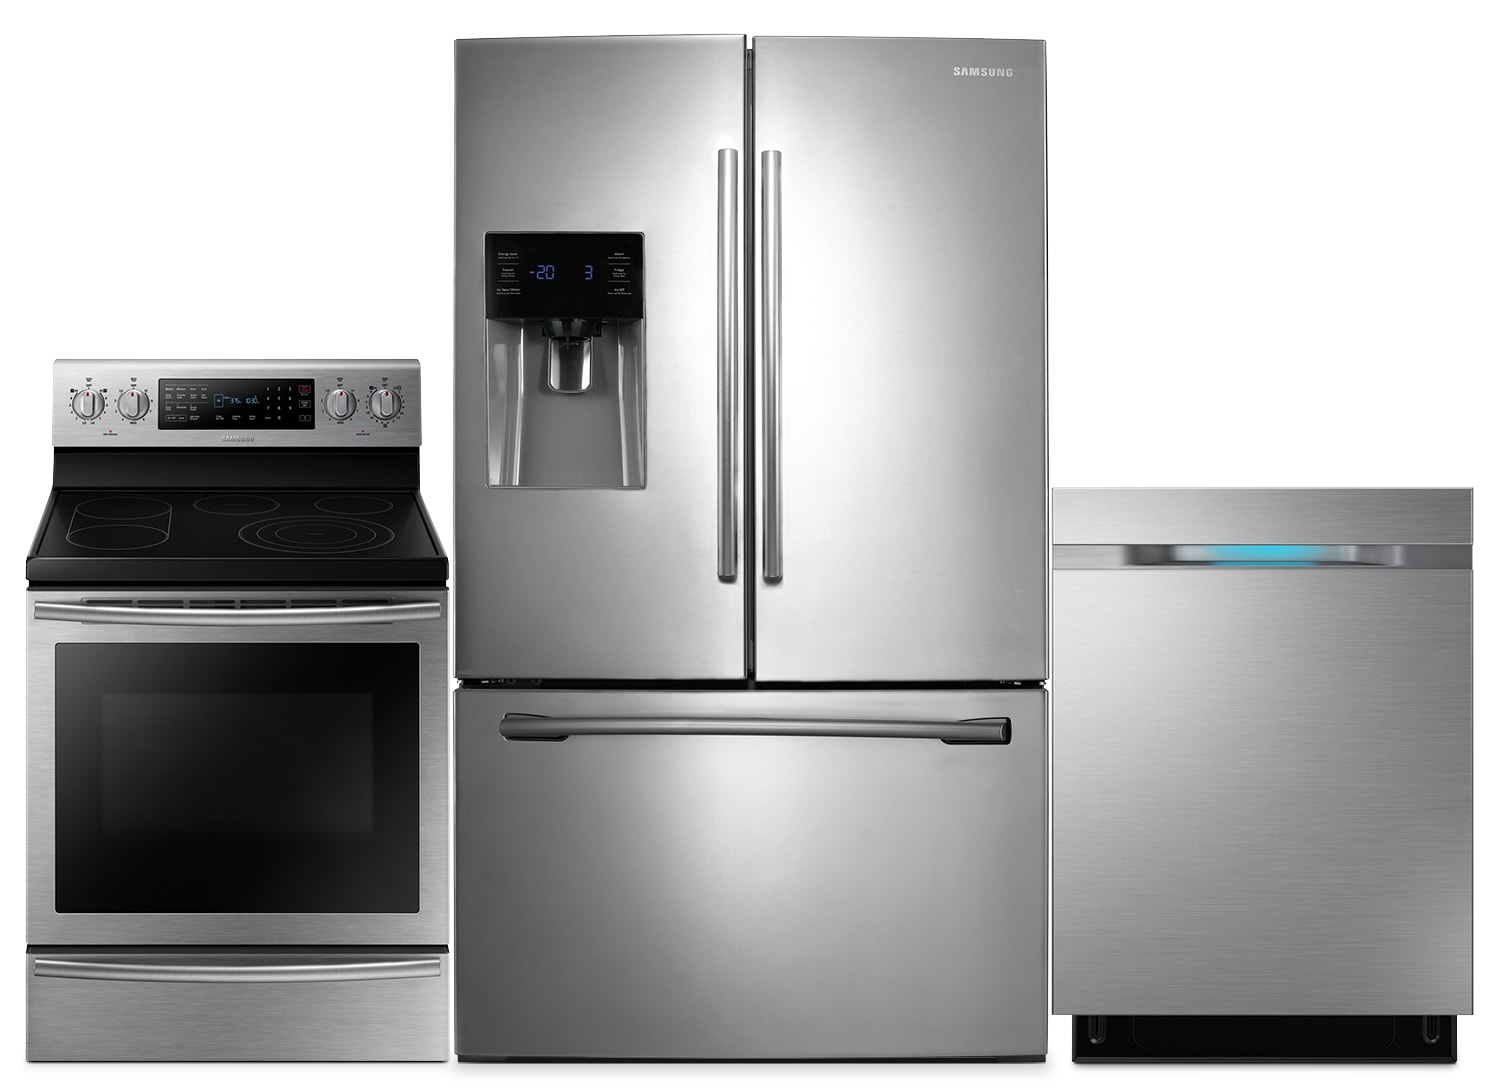 Cooking Products - Samsung 26 Cu. Ft. Refrigerator, 5.3 Cu. Ft. Electric Range and Built-In Dishwasher – Stainless Stee